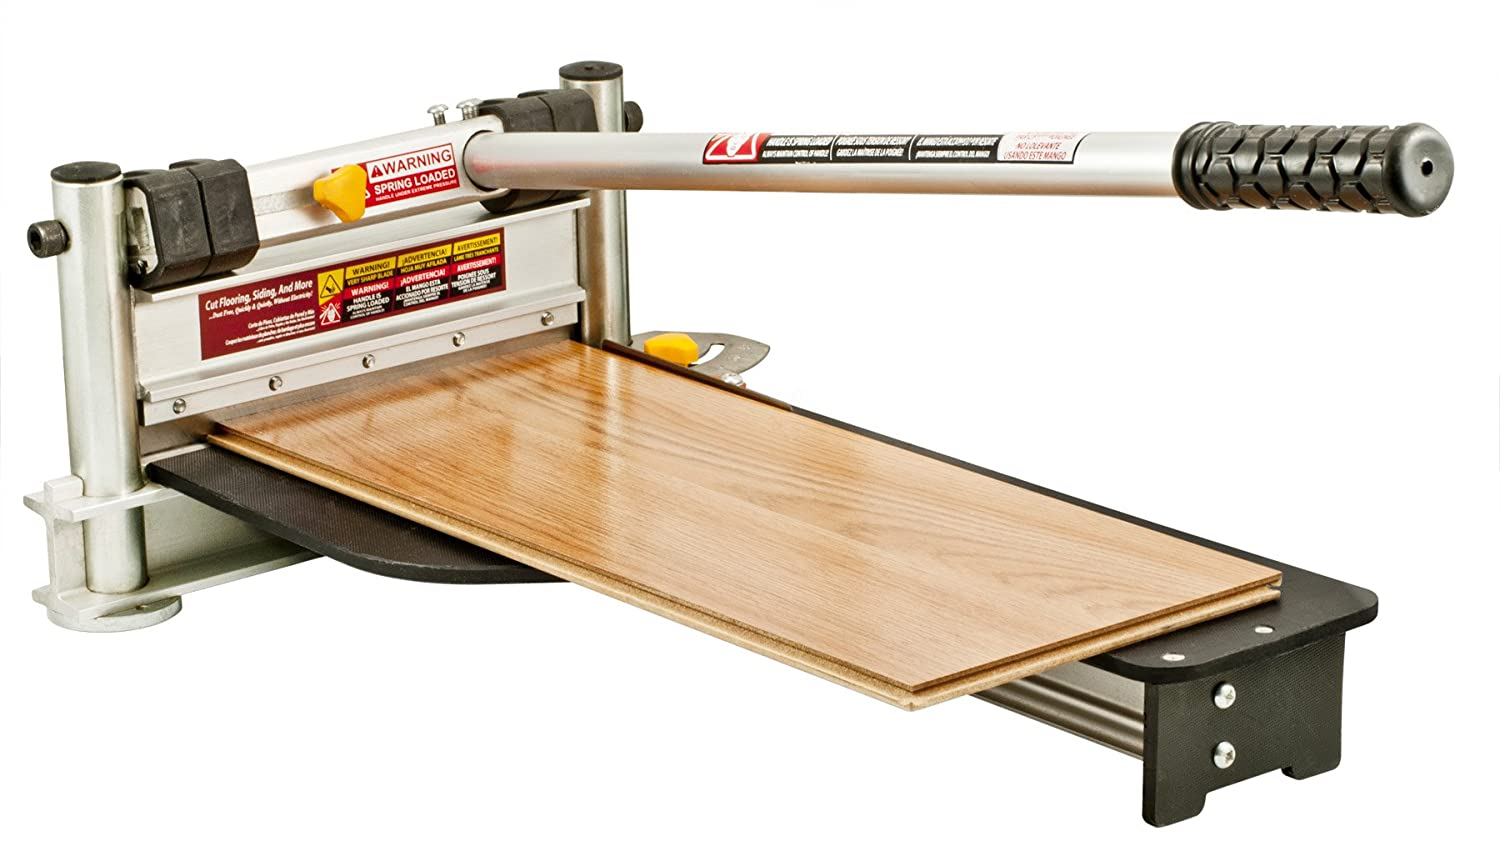 Laminate Floor Cutter Lowes bullet tools 9 inch ez shear sharpshooter siding and laminate flooring cutter Exchange A Blade 2100005 9 Inch Laminate Flooring Cutter Amazoncom